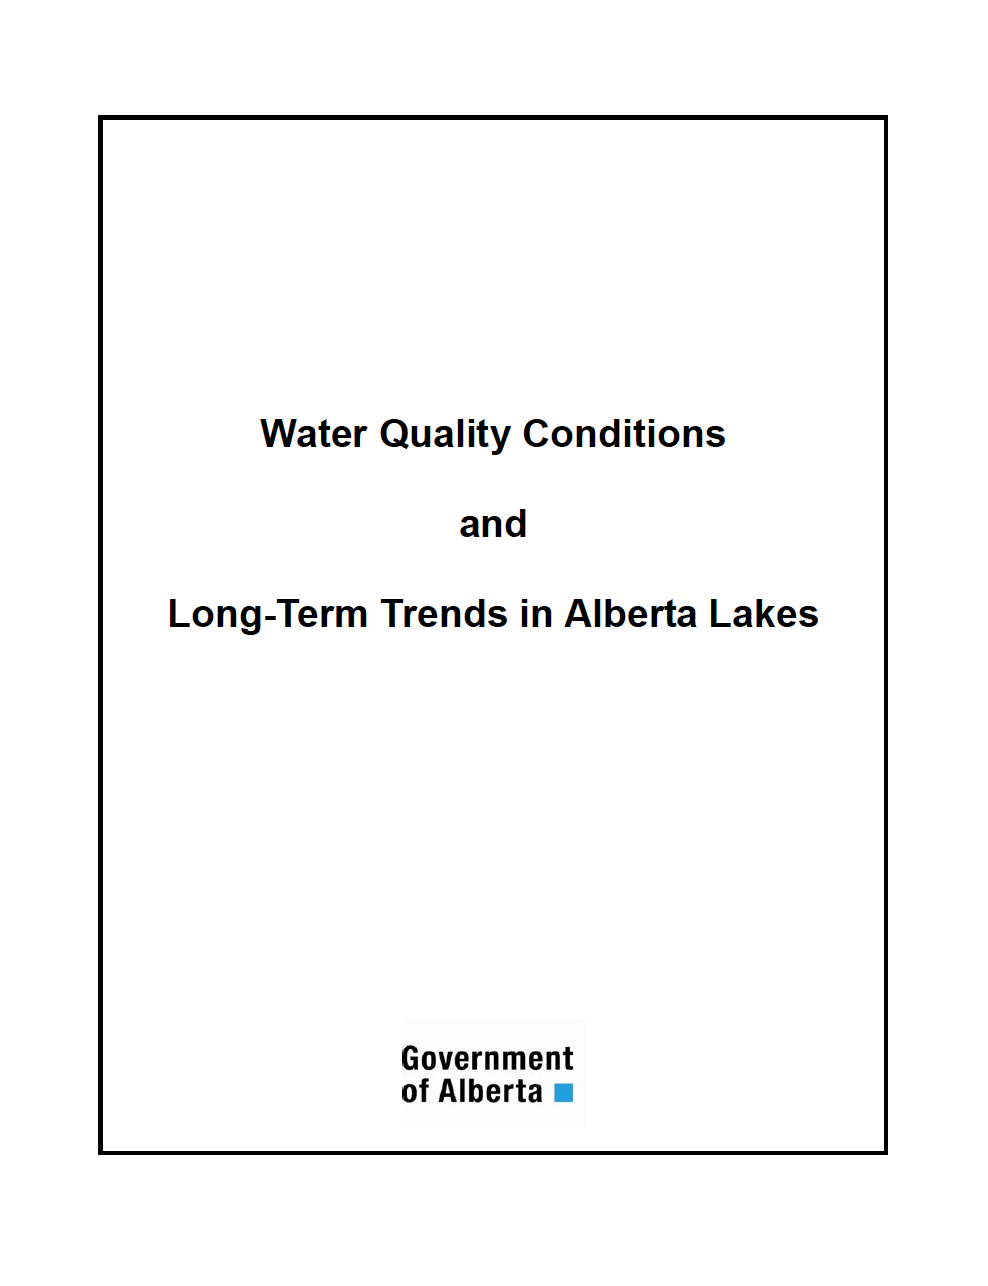 2011WaterQualityConditionsTrends-AlbertaLakes.png